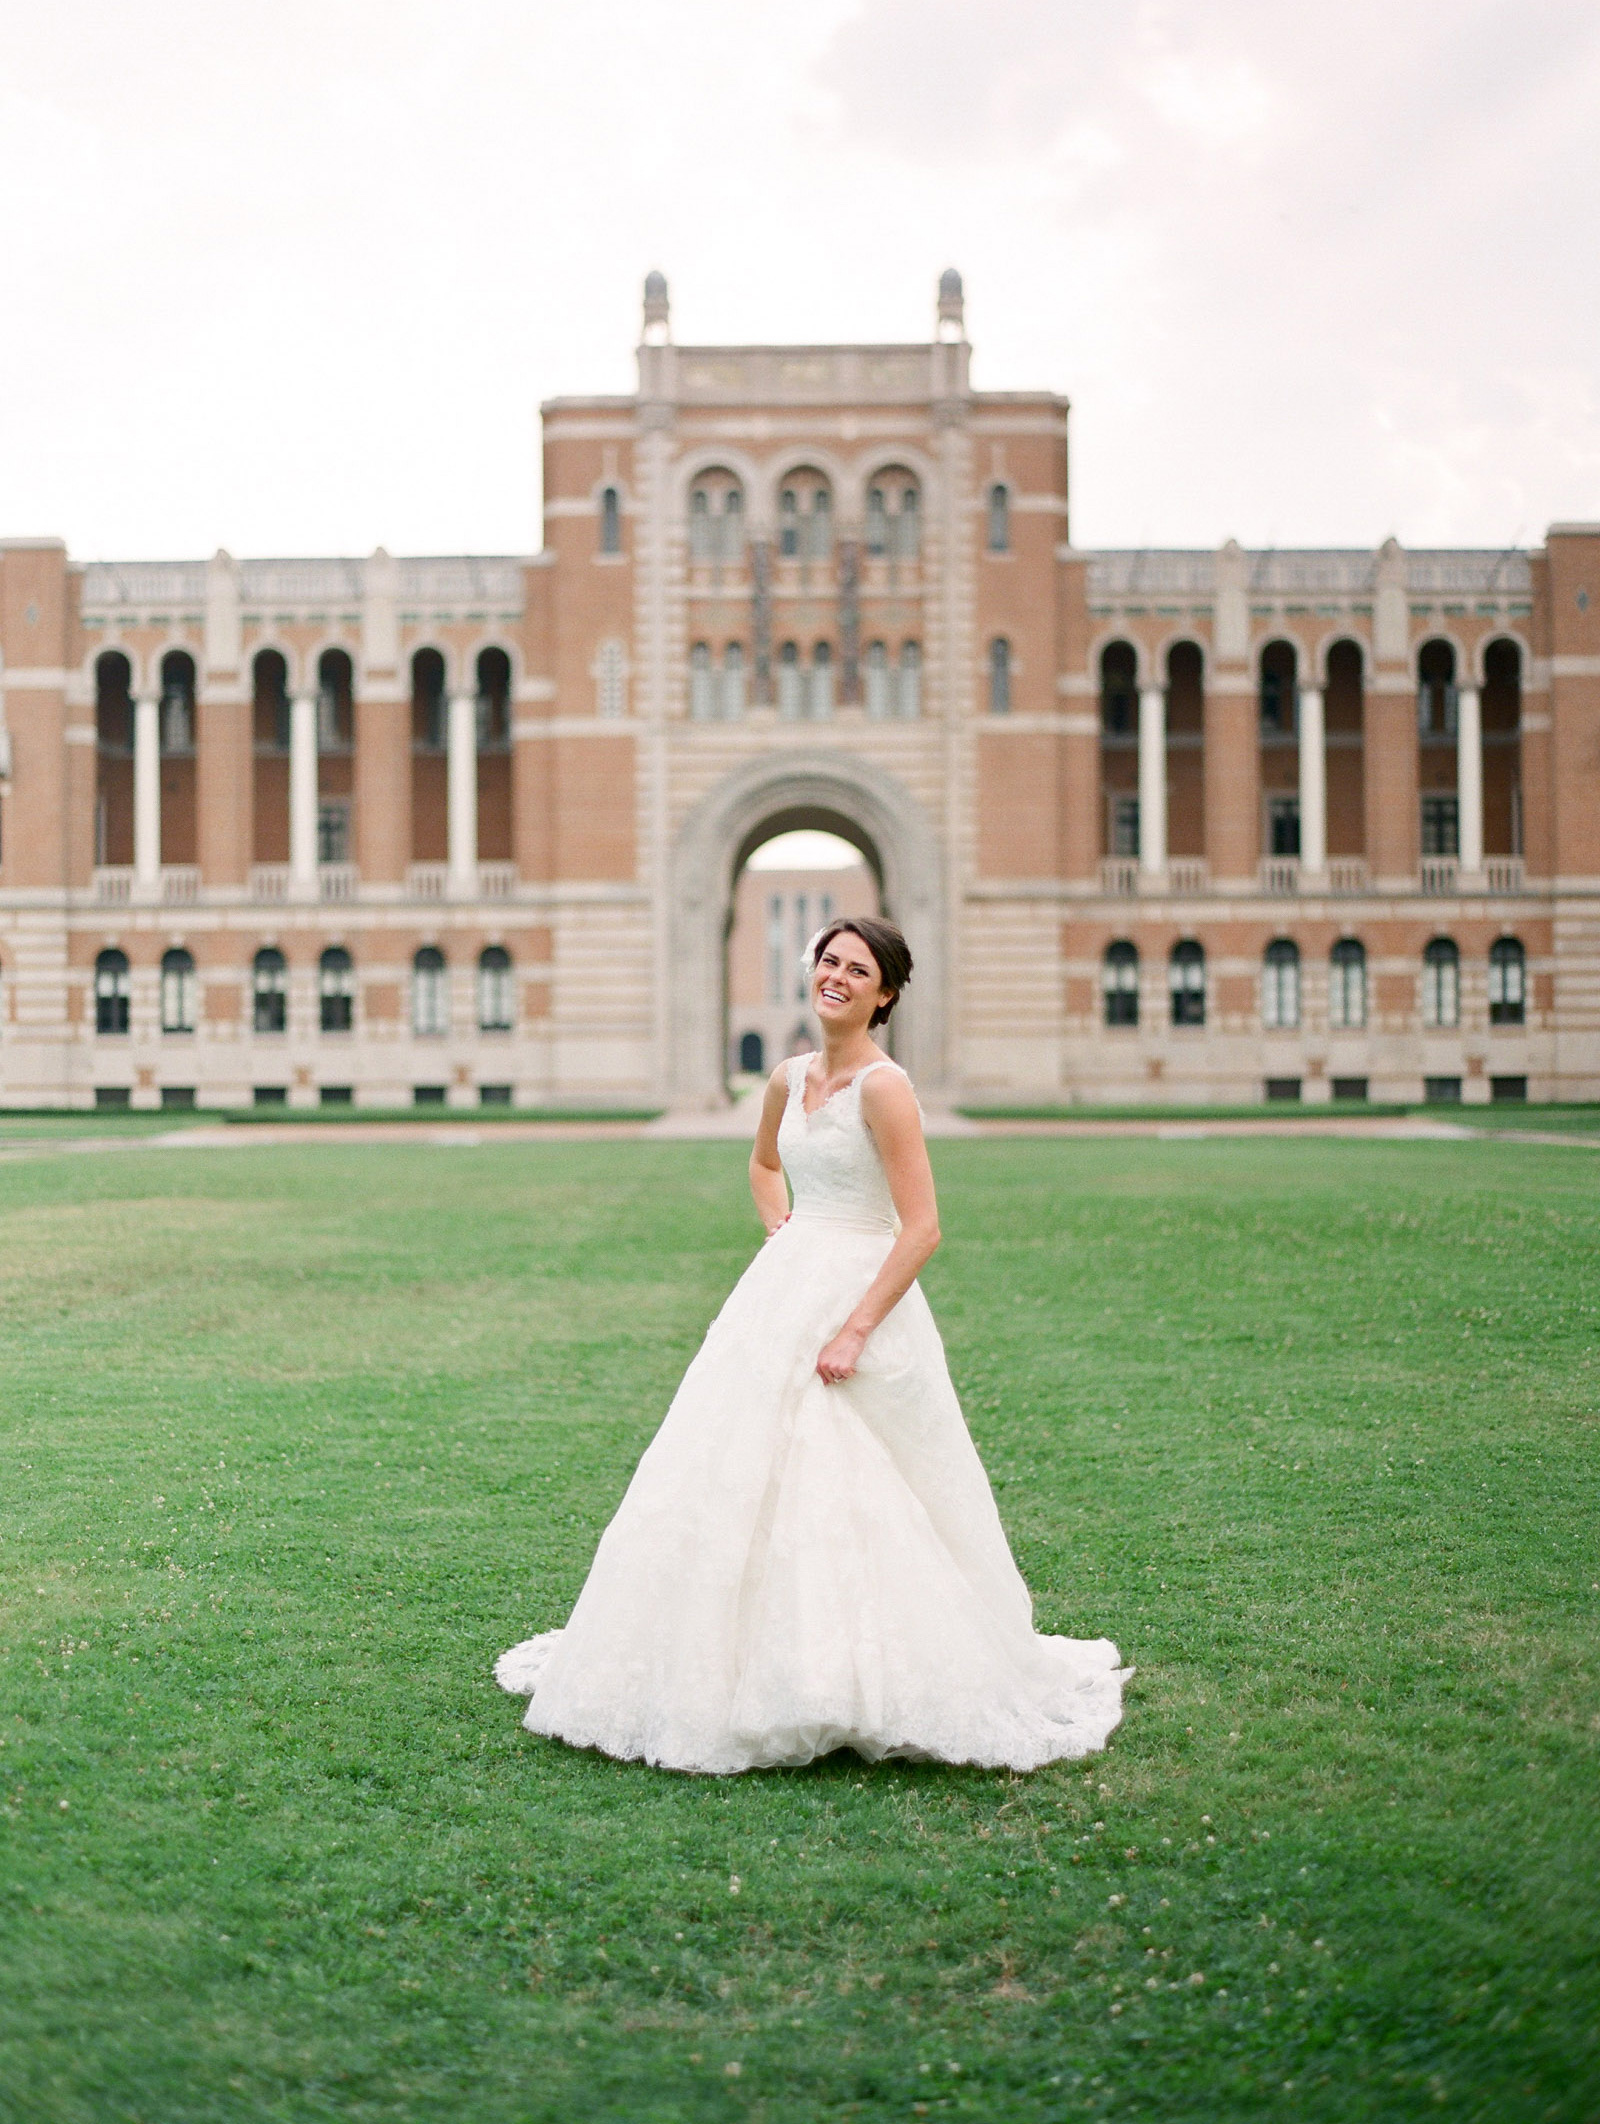 0085_0080_Houston-Rice-University-Film-Bridal-Photographer.jpg